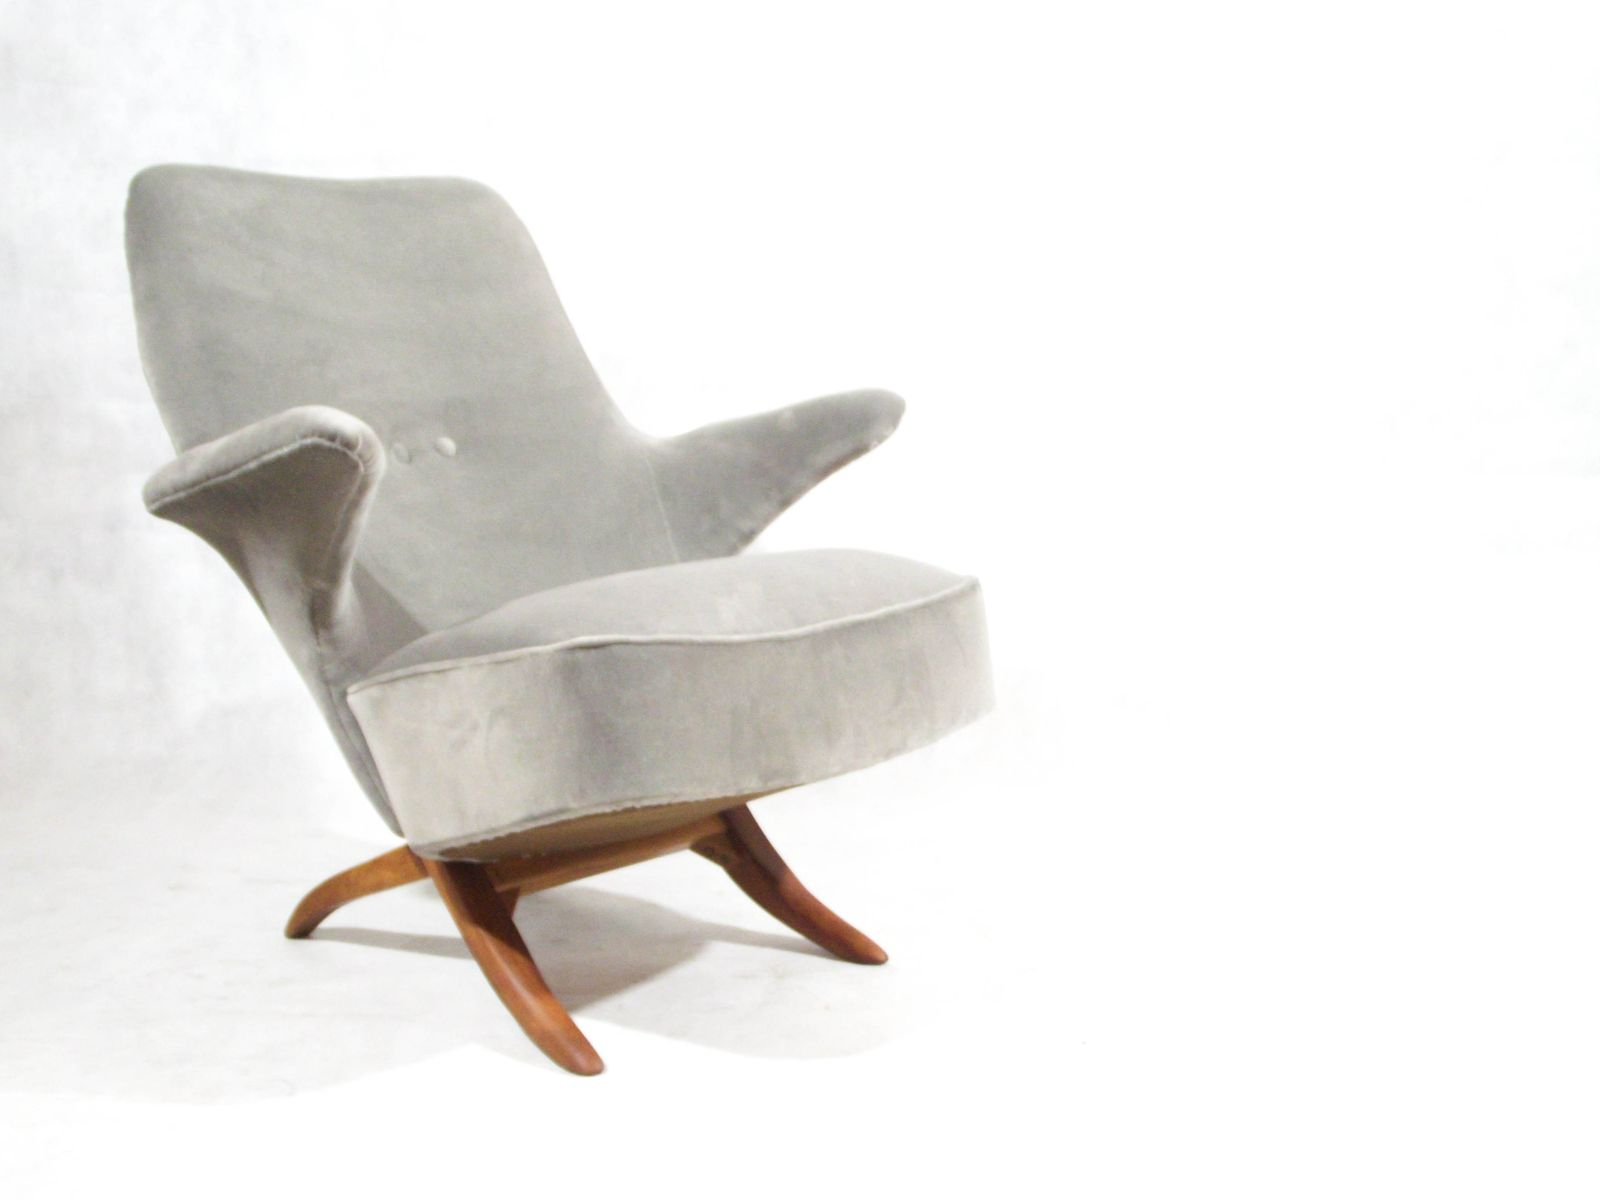 Theo Ii Swivel Chairs Inside Widely Used Mid Century Penguin Lounge Chairtheo Ruth For Artifort For Sale (Gallery 15 of 20)